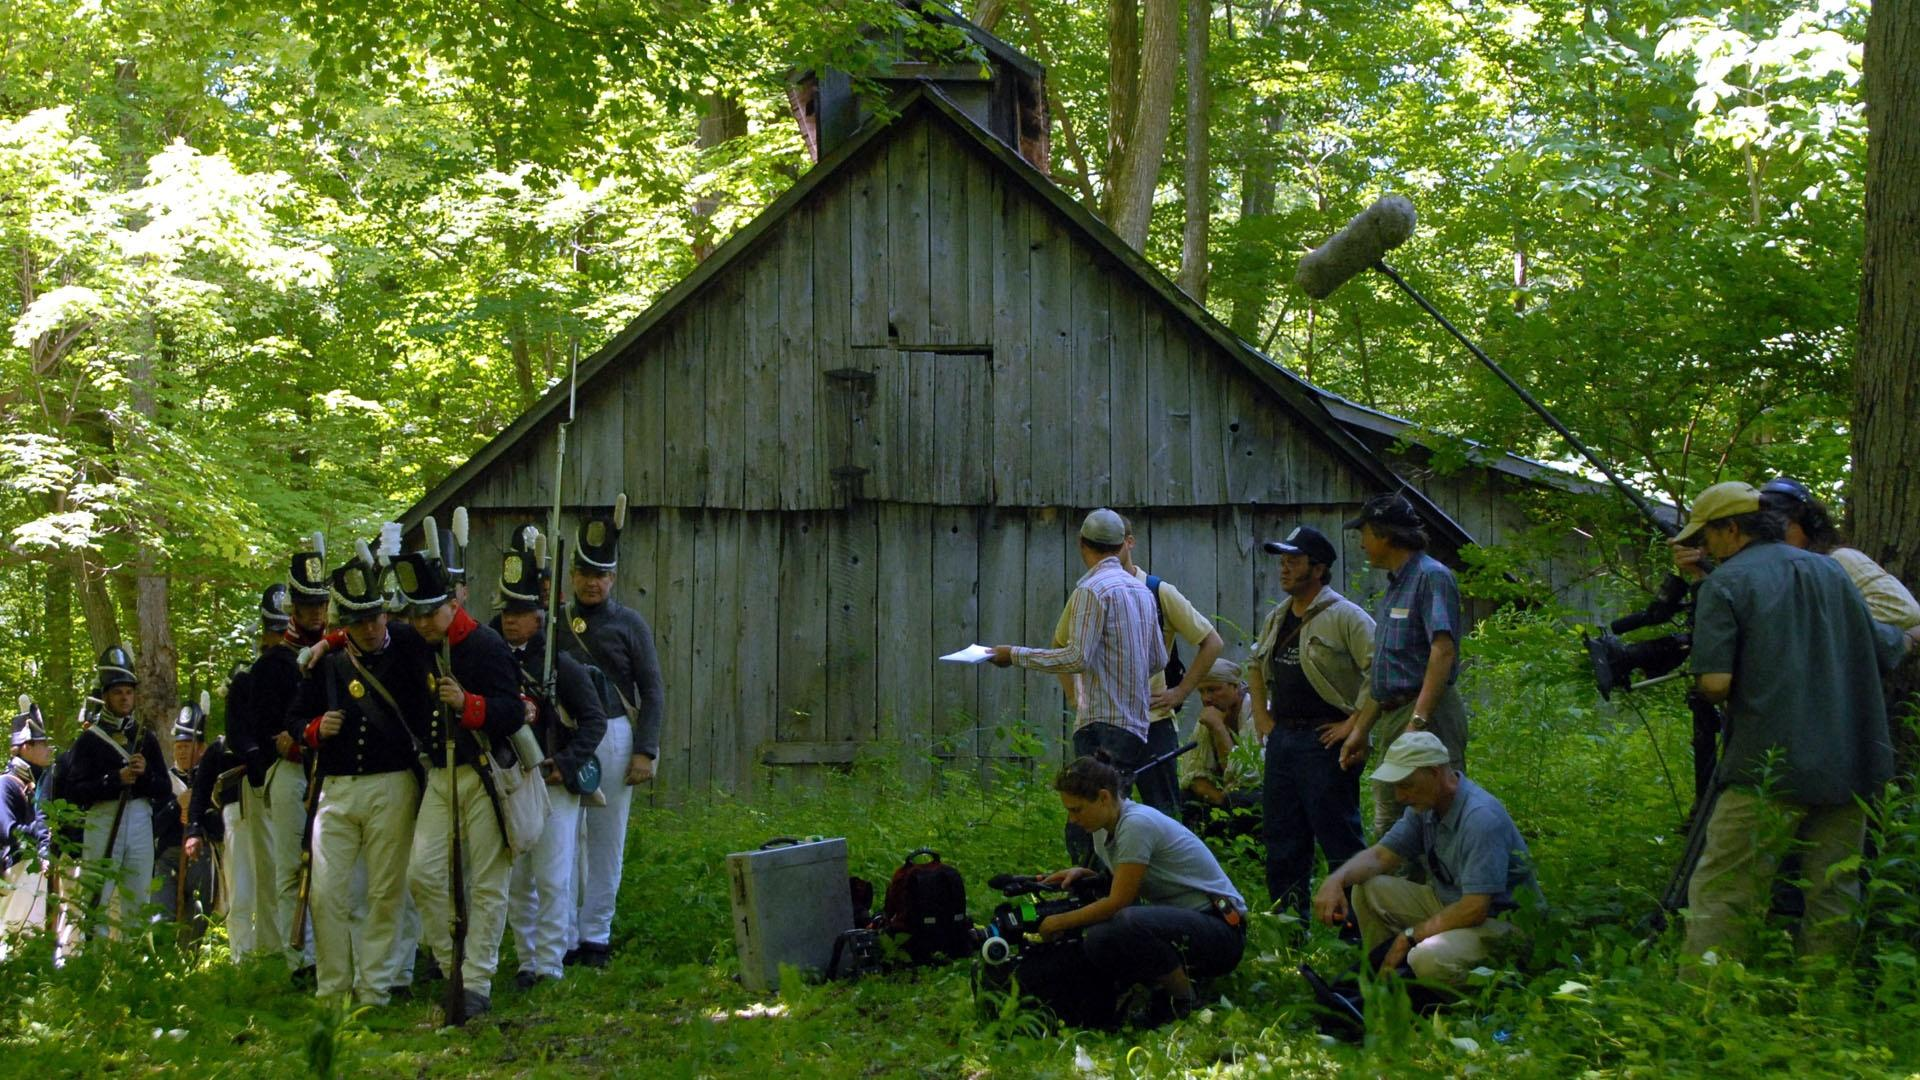 The crew films a re-enactment scene for the War of 1812.